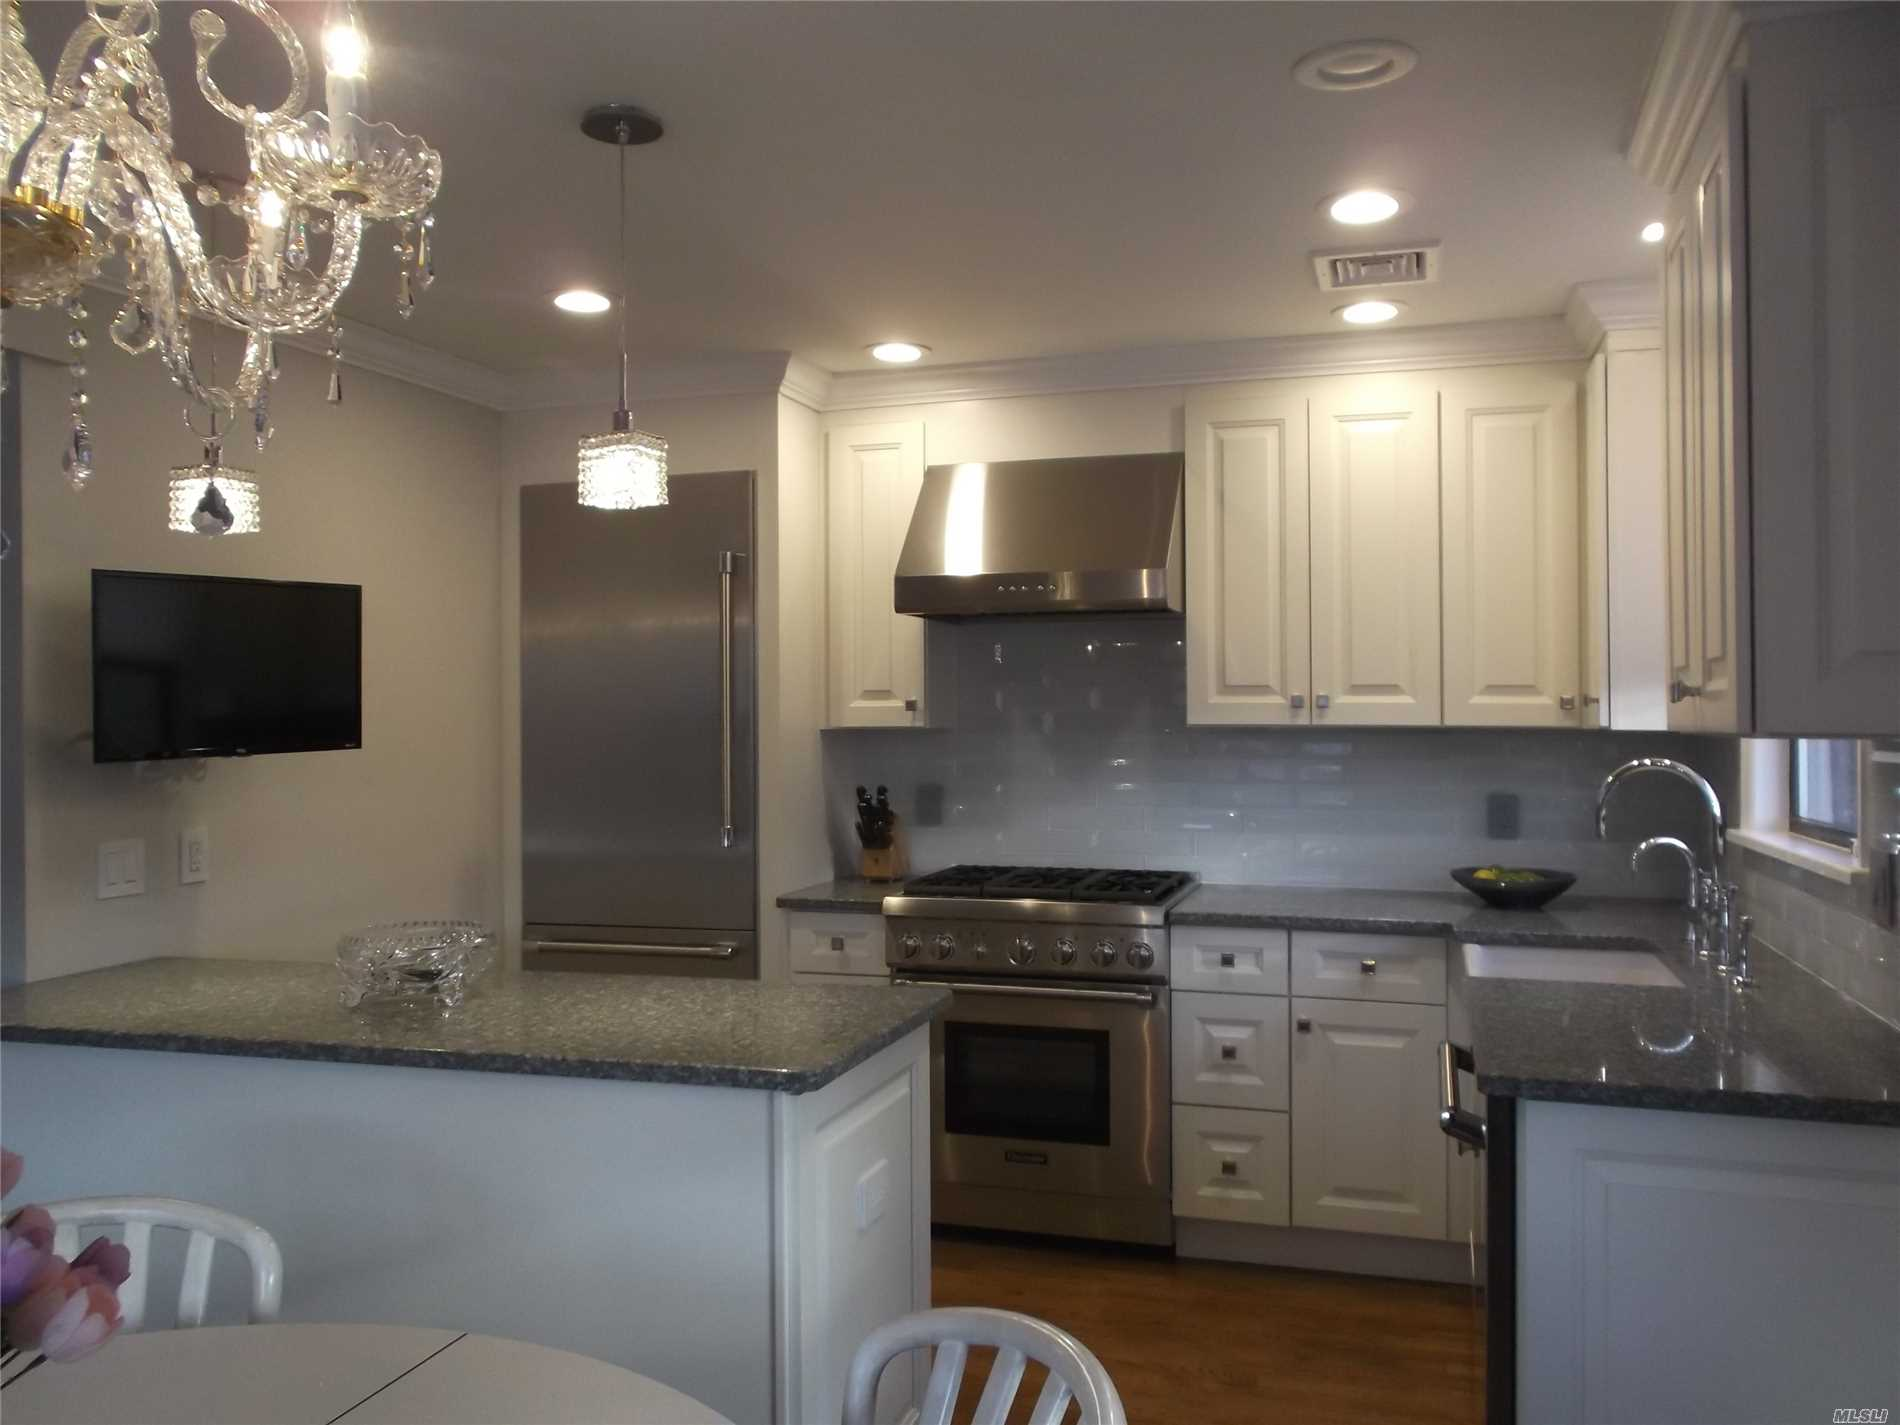 Magnificent 2 Bedroom/2 Full Bath/ Gormet Kitchen W/Thermadore Appliances. Hood Fan Vented Outdoors. In Unit Pvt Laundry W/Electrolux W/D. Central Air. Oak Floors. All New Electrical & Plumbing..Complete Gut High End Renovation. Solid Doors High End Hardware/ Closet Systems/ Led Lighting. Too Much To List...